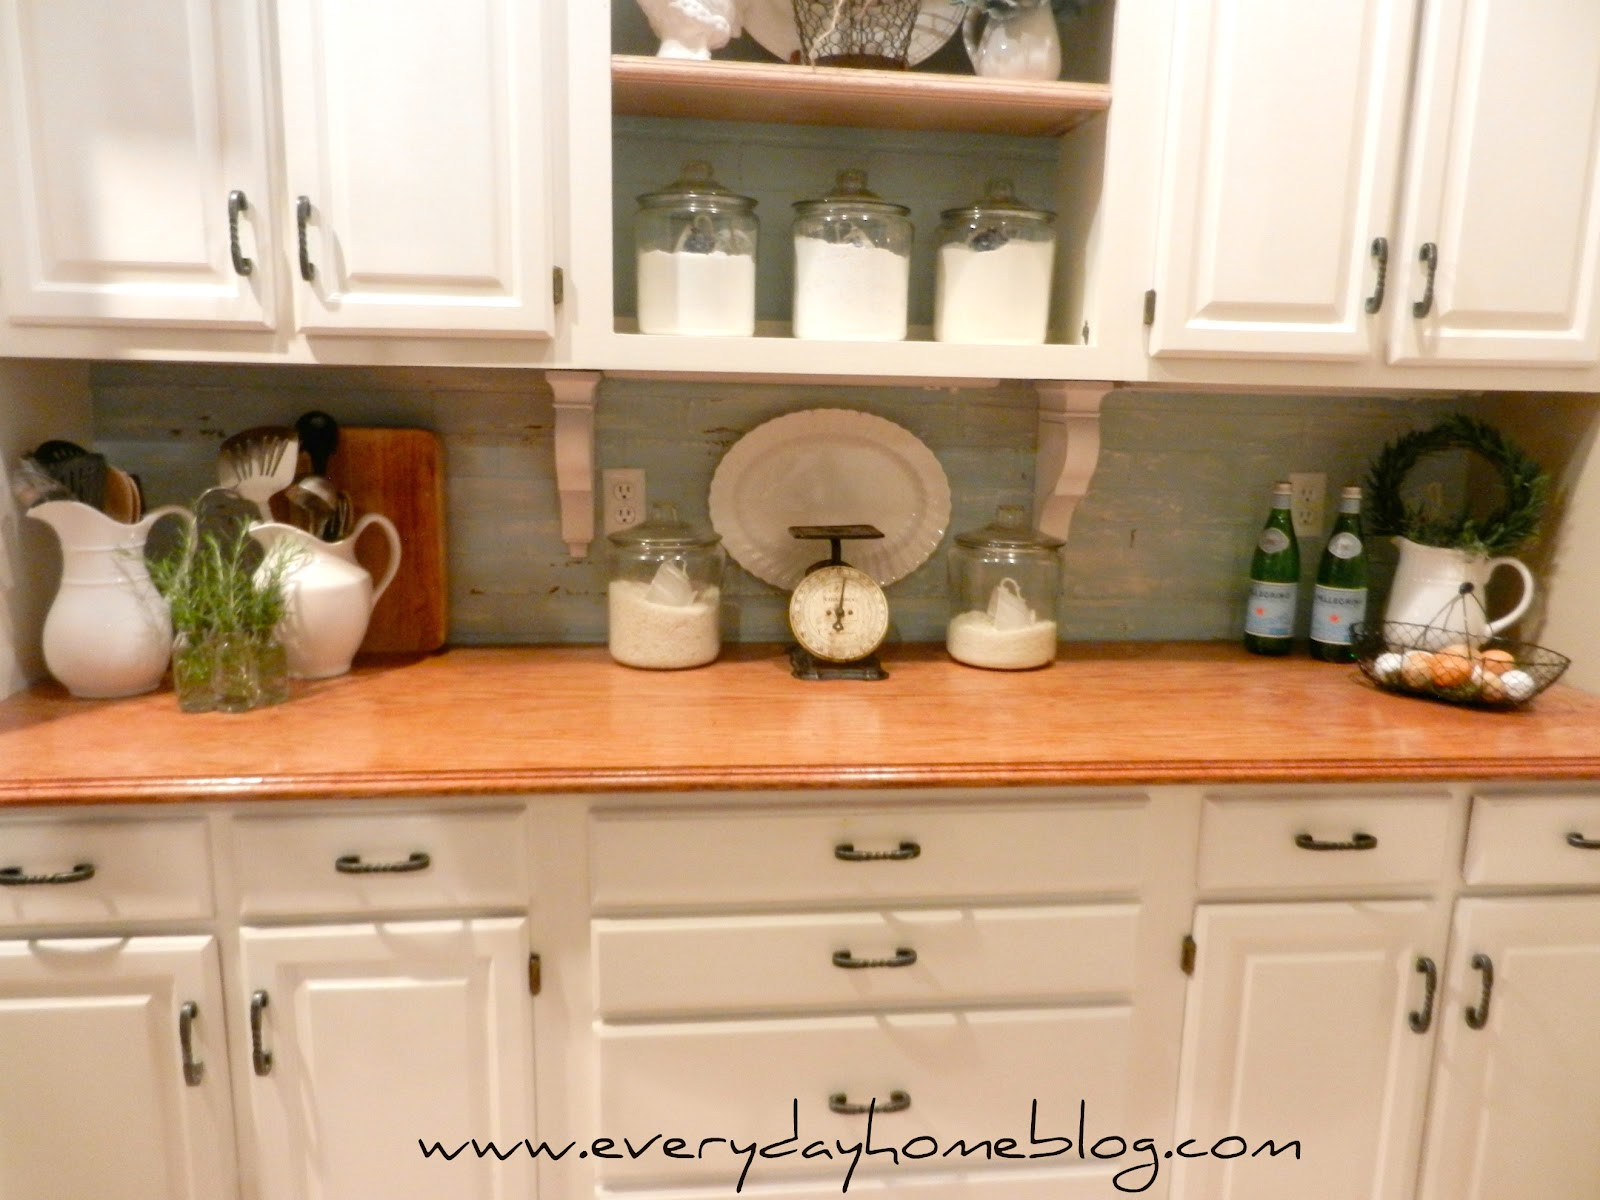 Pictures Of Backsplash In Kitchens Budget Friendly Painted Brick Backsplash At The Everyday Home